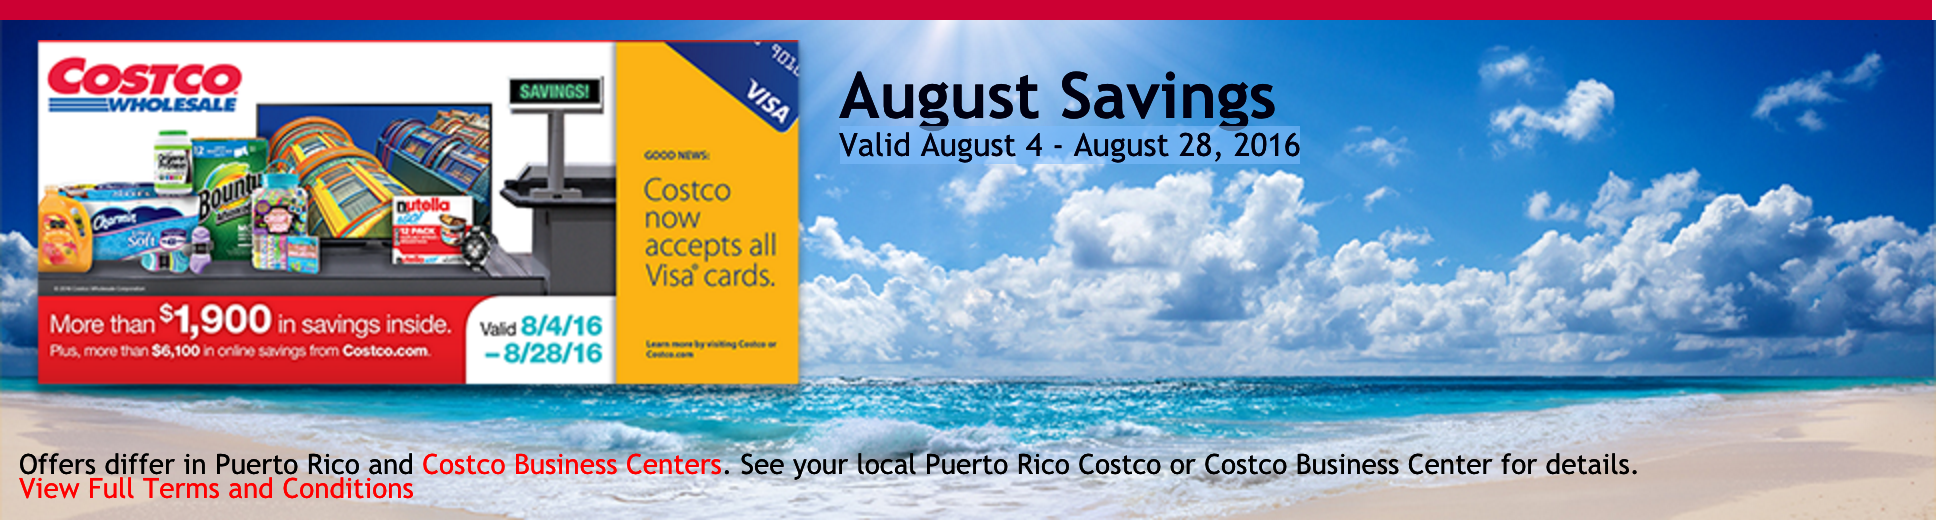 Costco-Coupons-August2016